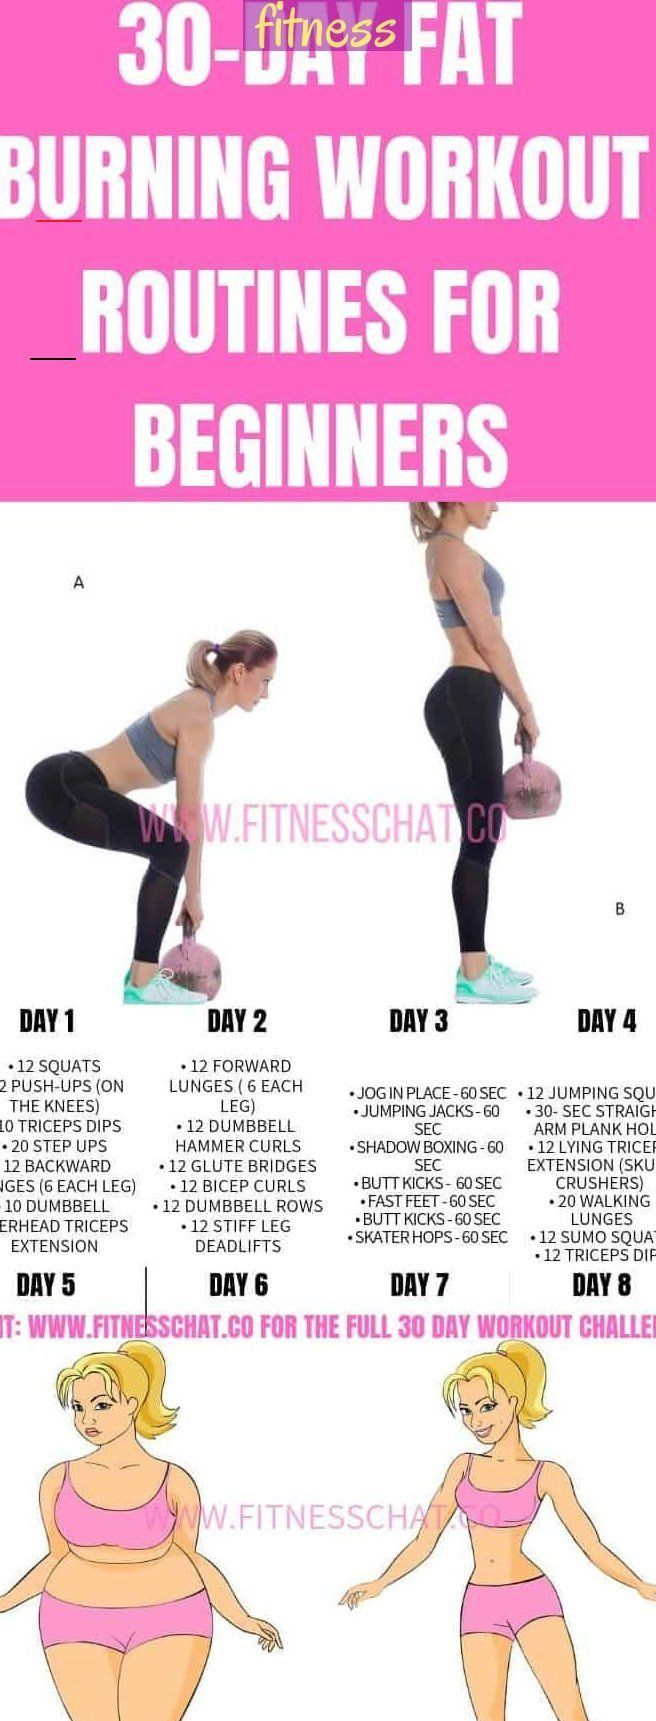 At Home Workout Plans For Women Ab Workouts At Home - #fitness zu hause trainingspläne für frauen ab...